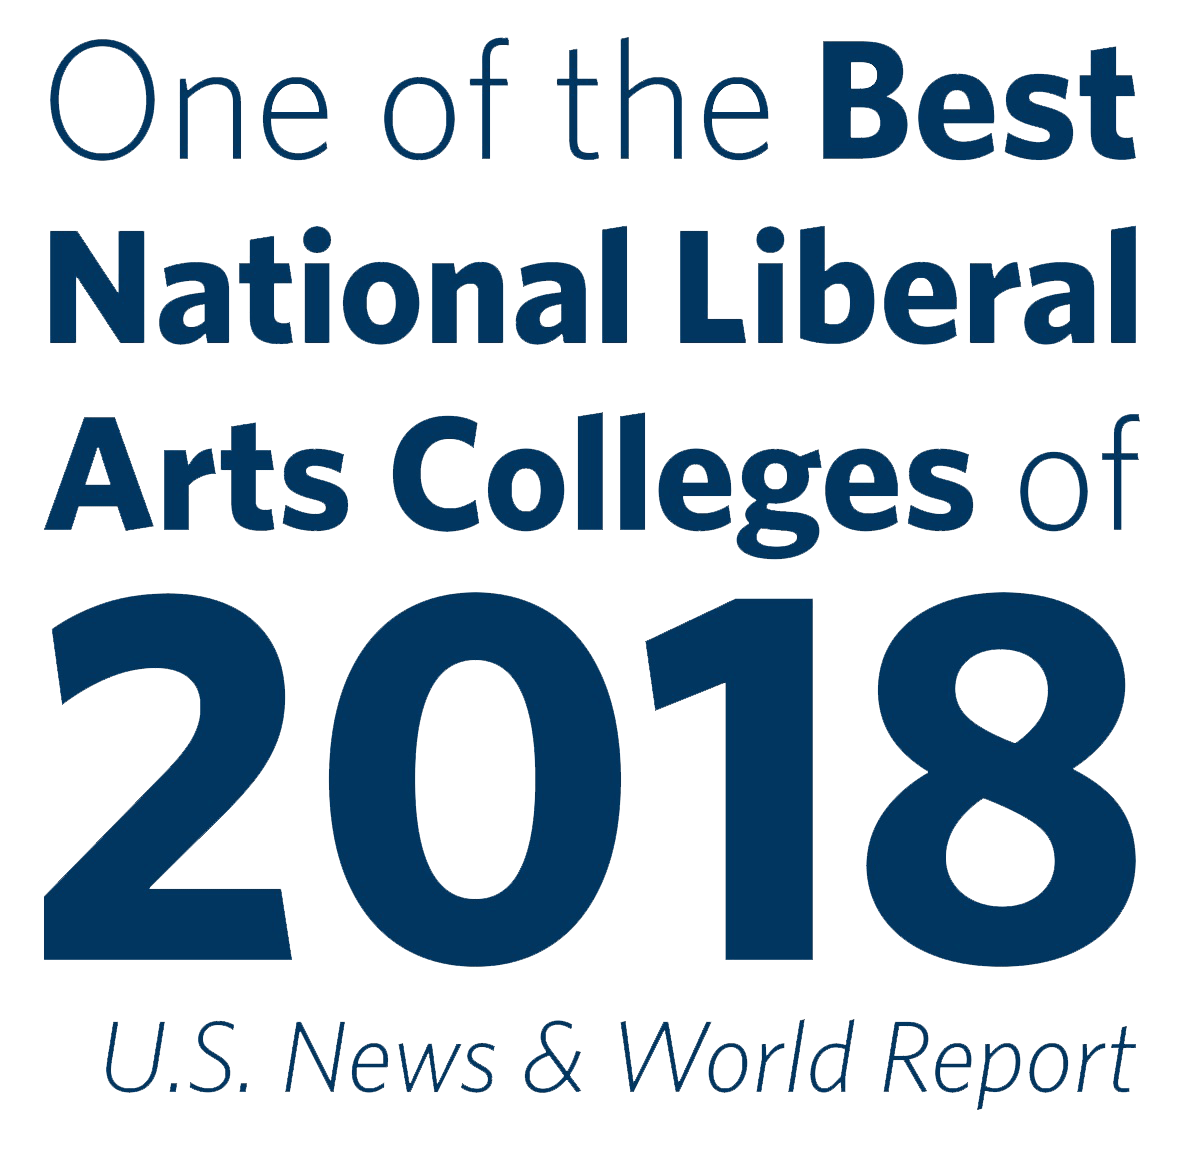 One of the best National Liberal Arts Colleges of 2018, US News and world report.